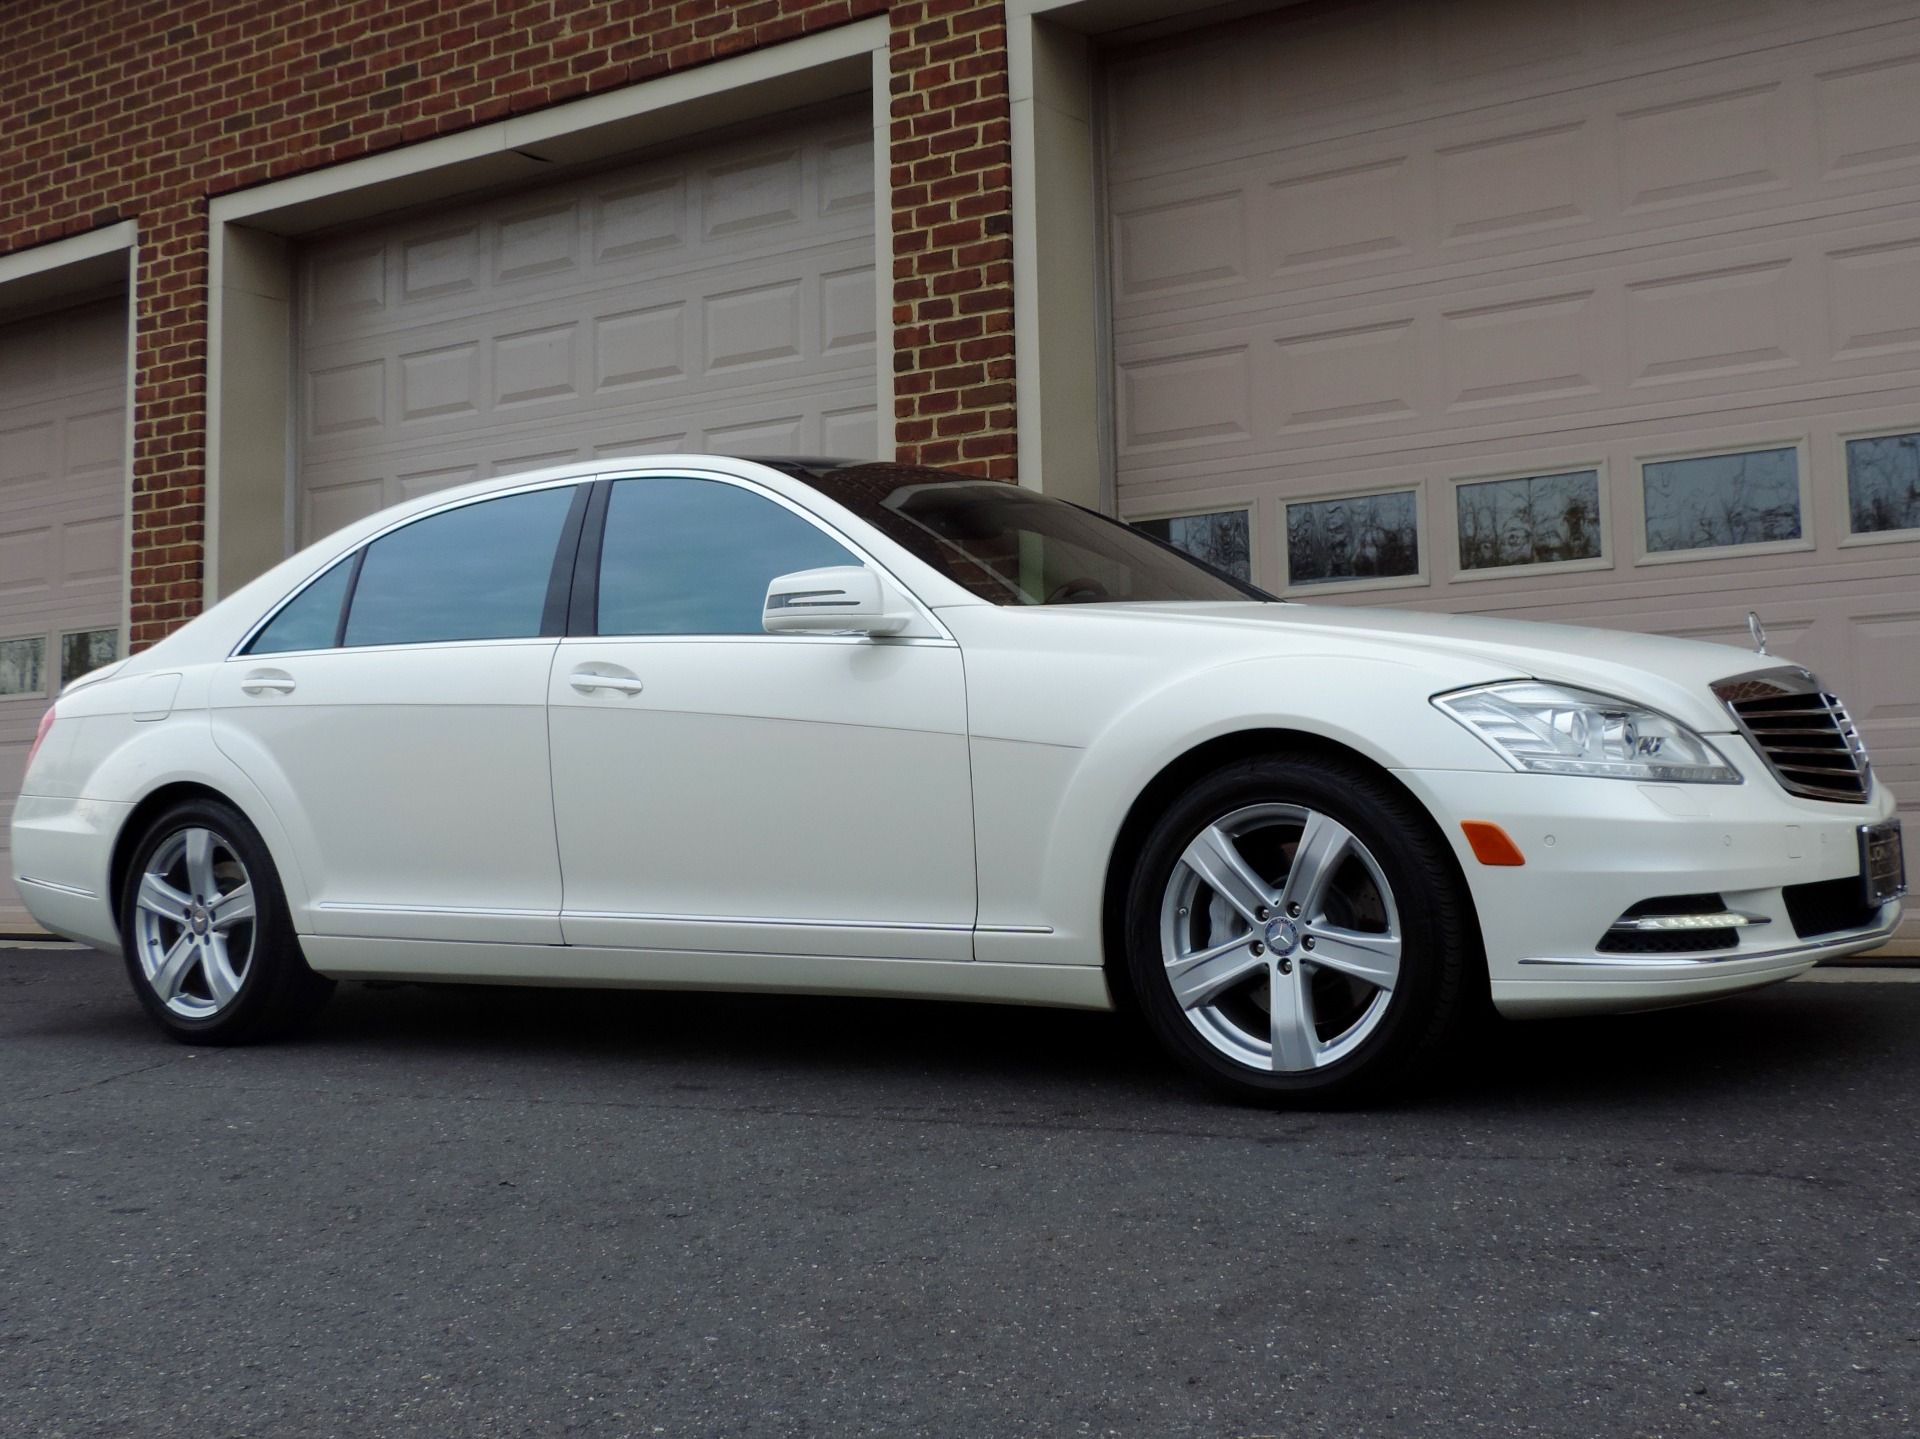 2011 mercedes benz s class s 550 4matic stock 378611 for for 2011 mercedes benz s class